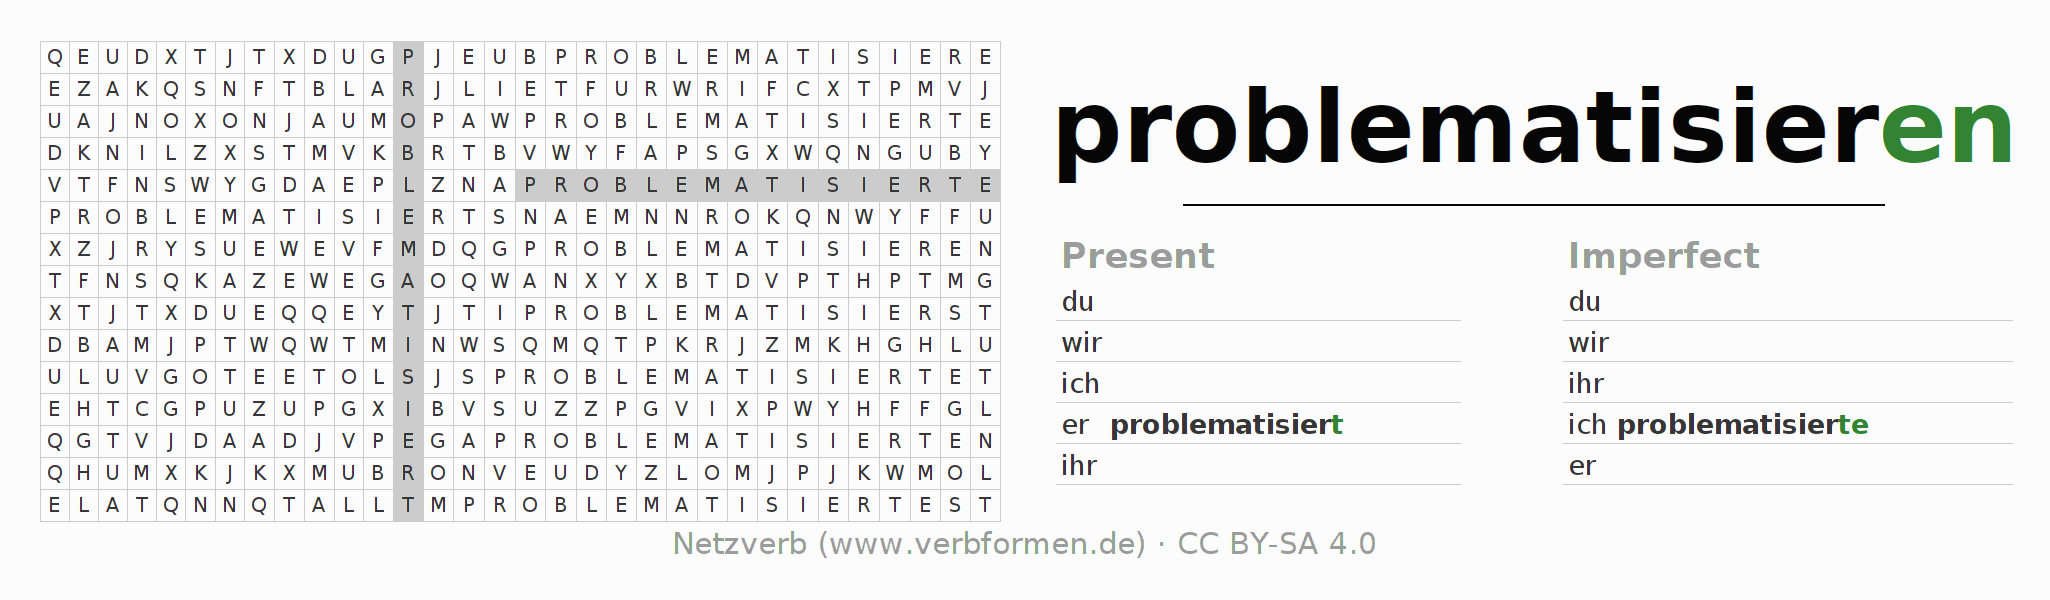 Word search puzzle for the conjugation of the verb problematisieren